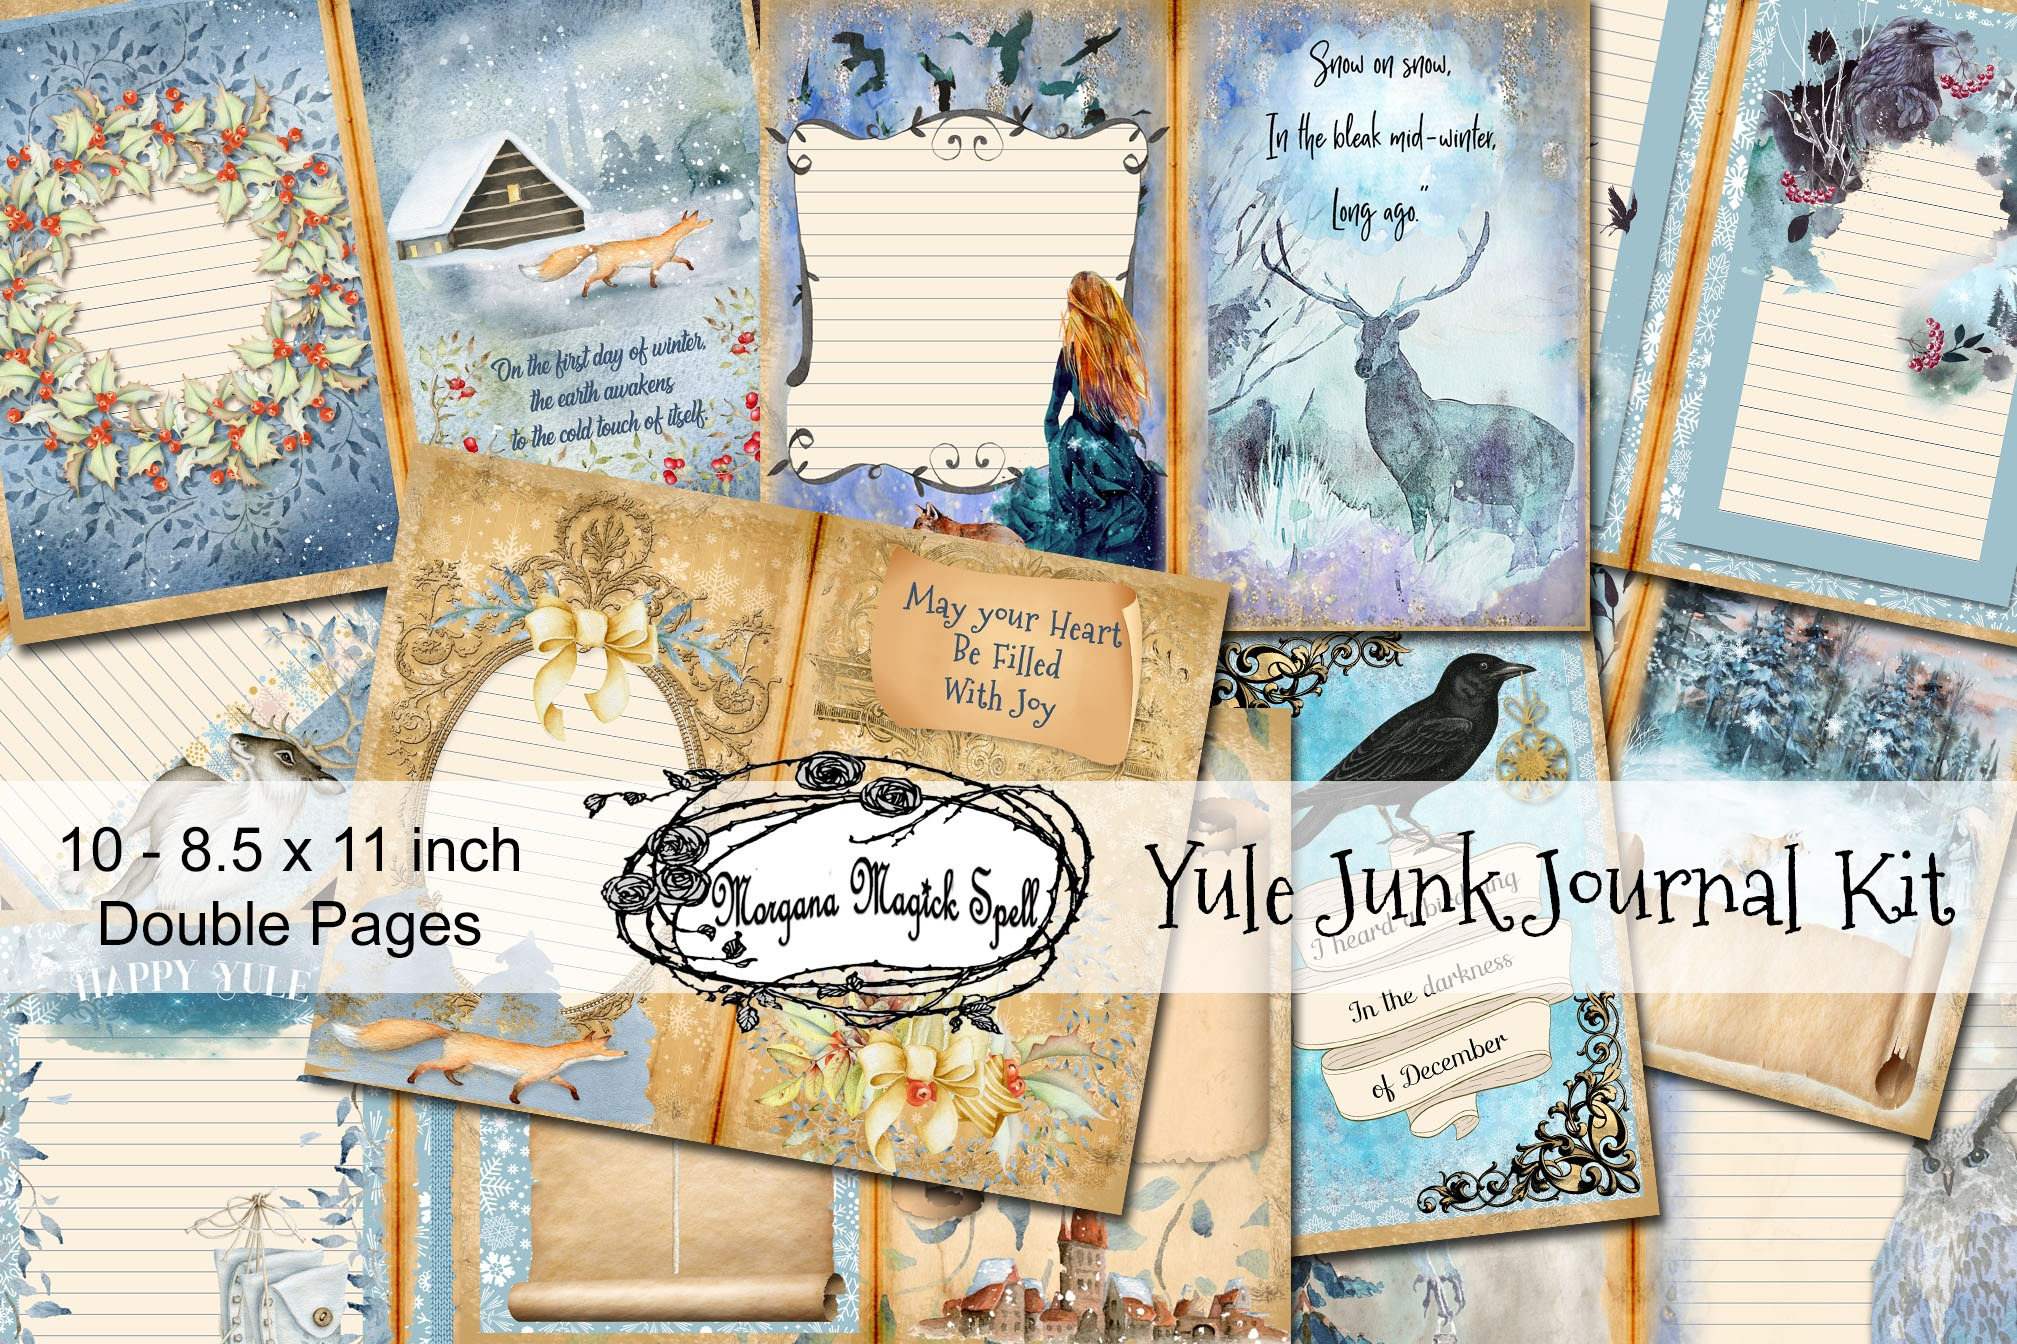 YULE JUNK JOURNAL Kit  - 10 Printable Pages